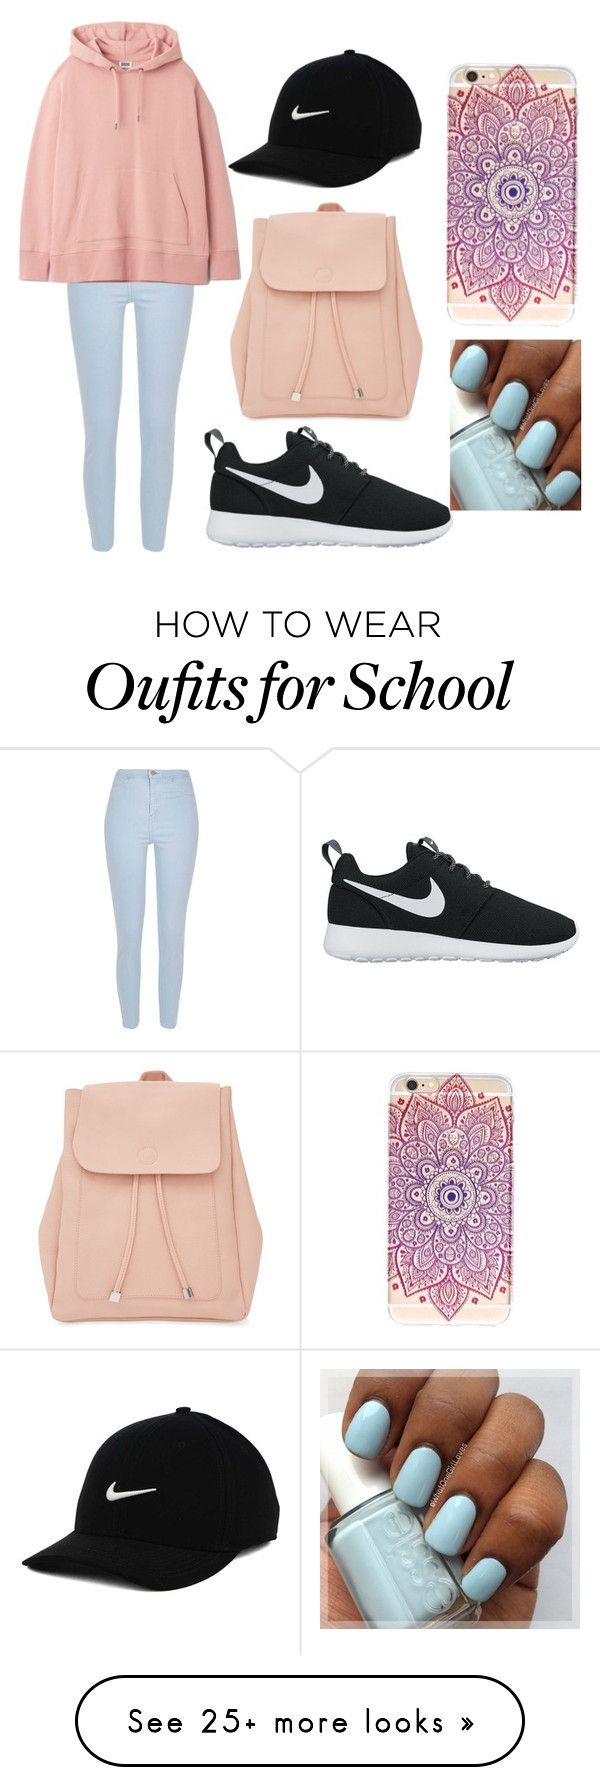 """school again?"" by destgreen on Polyvore featuring River Island, NIKE and New Look"